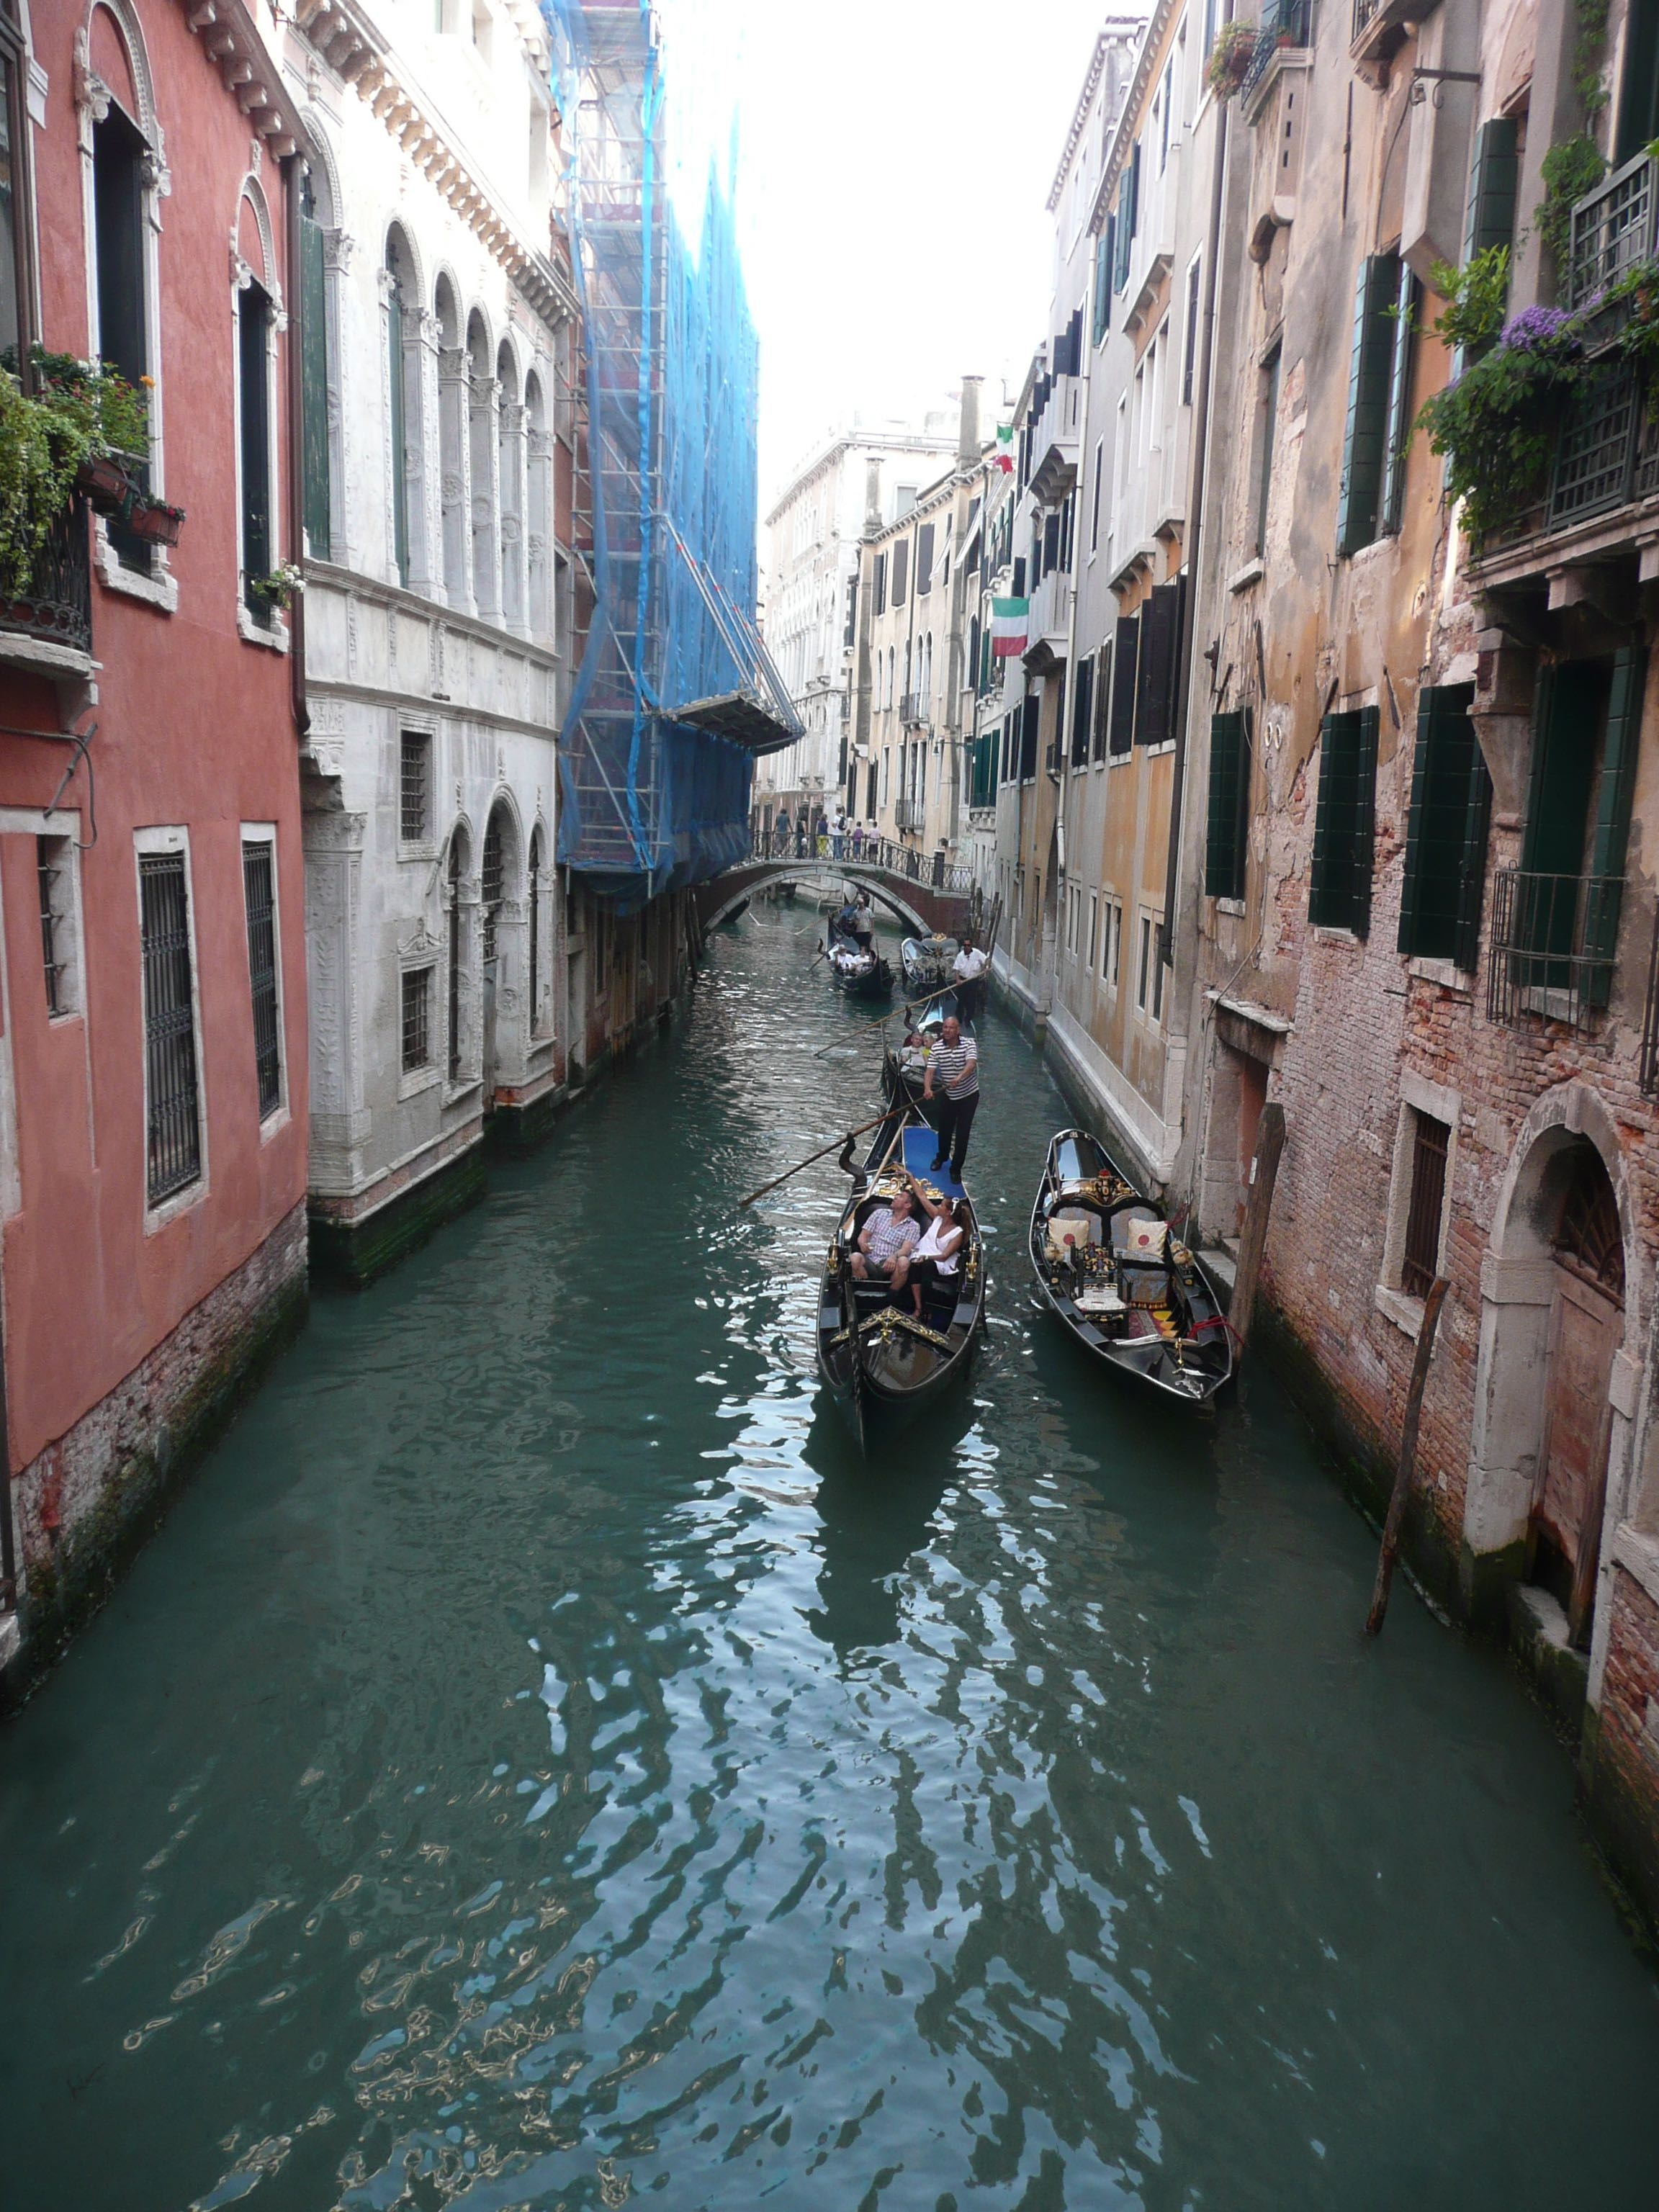 REVIEW -6/16/12 Mediterranean Venice Cruise on Solstice ...